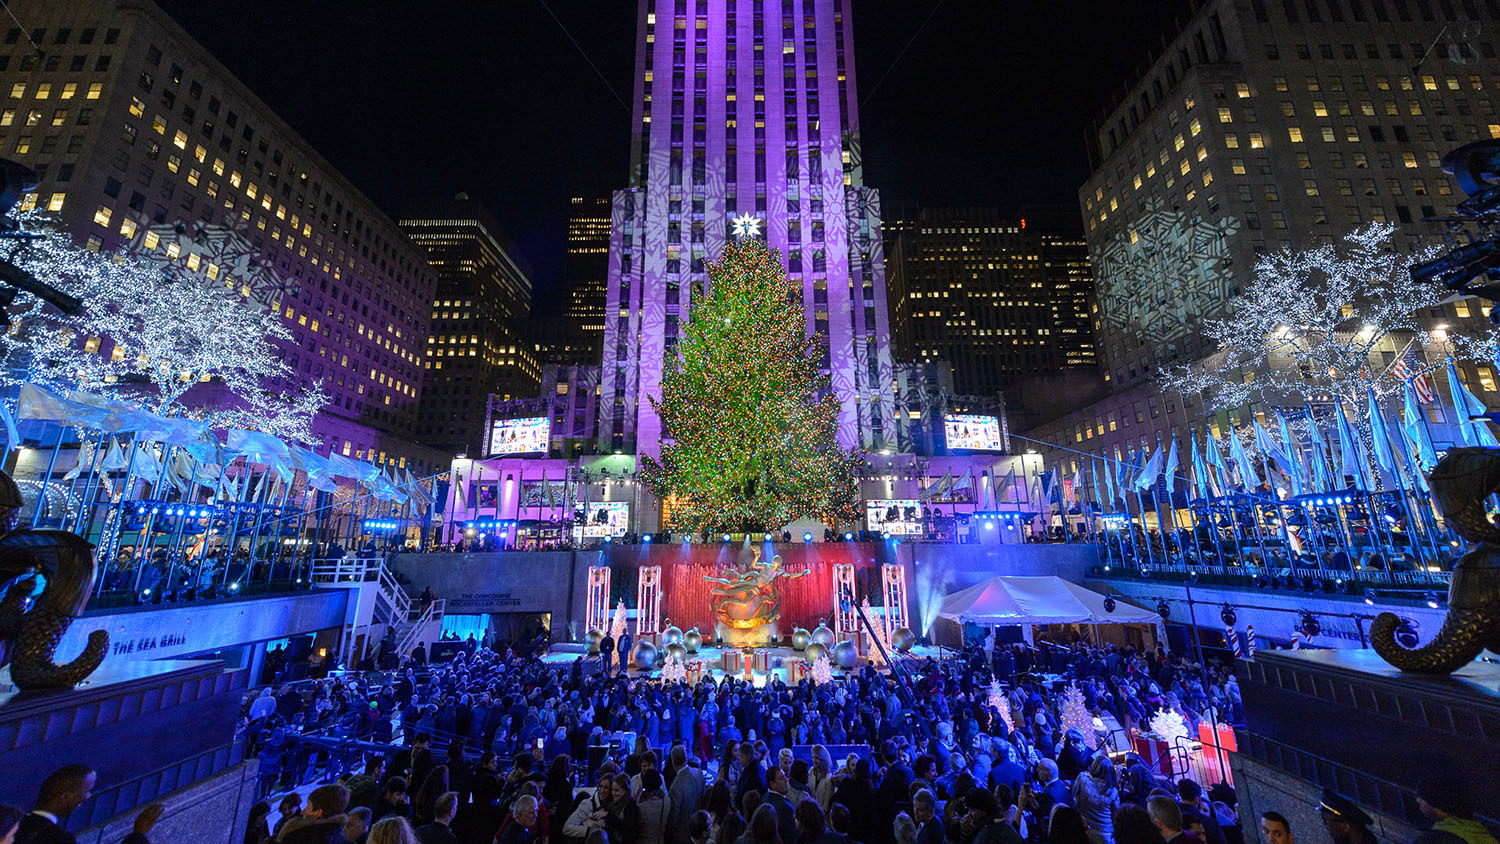 11 things you should know about the Rockefeller Center Christmas Tree